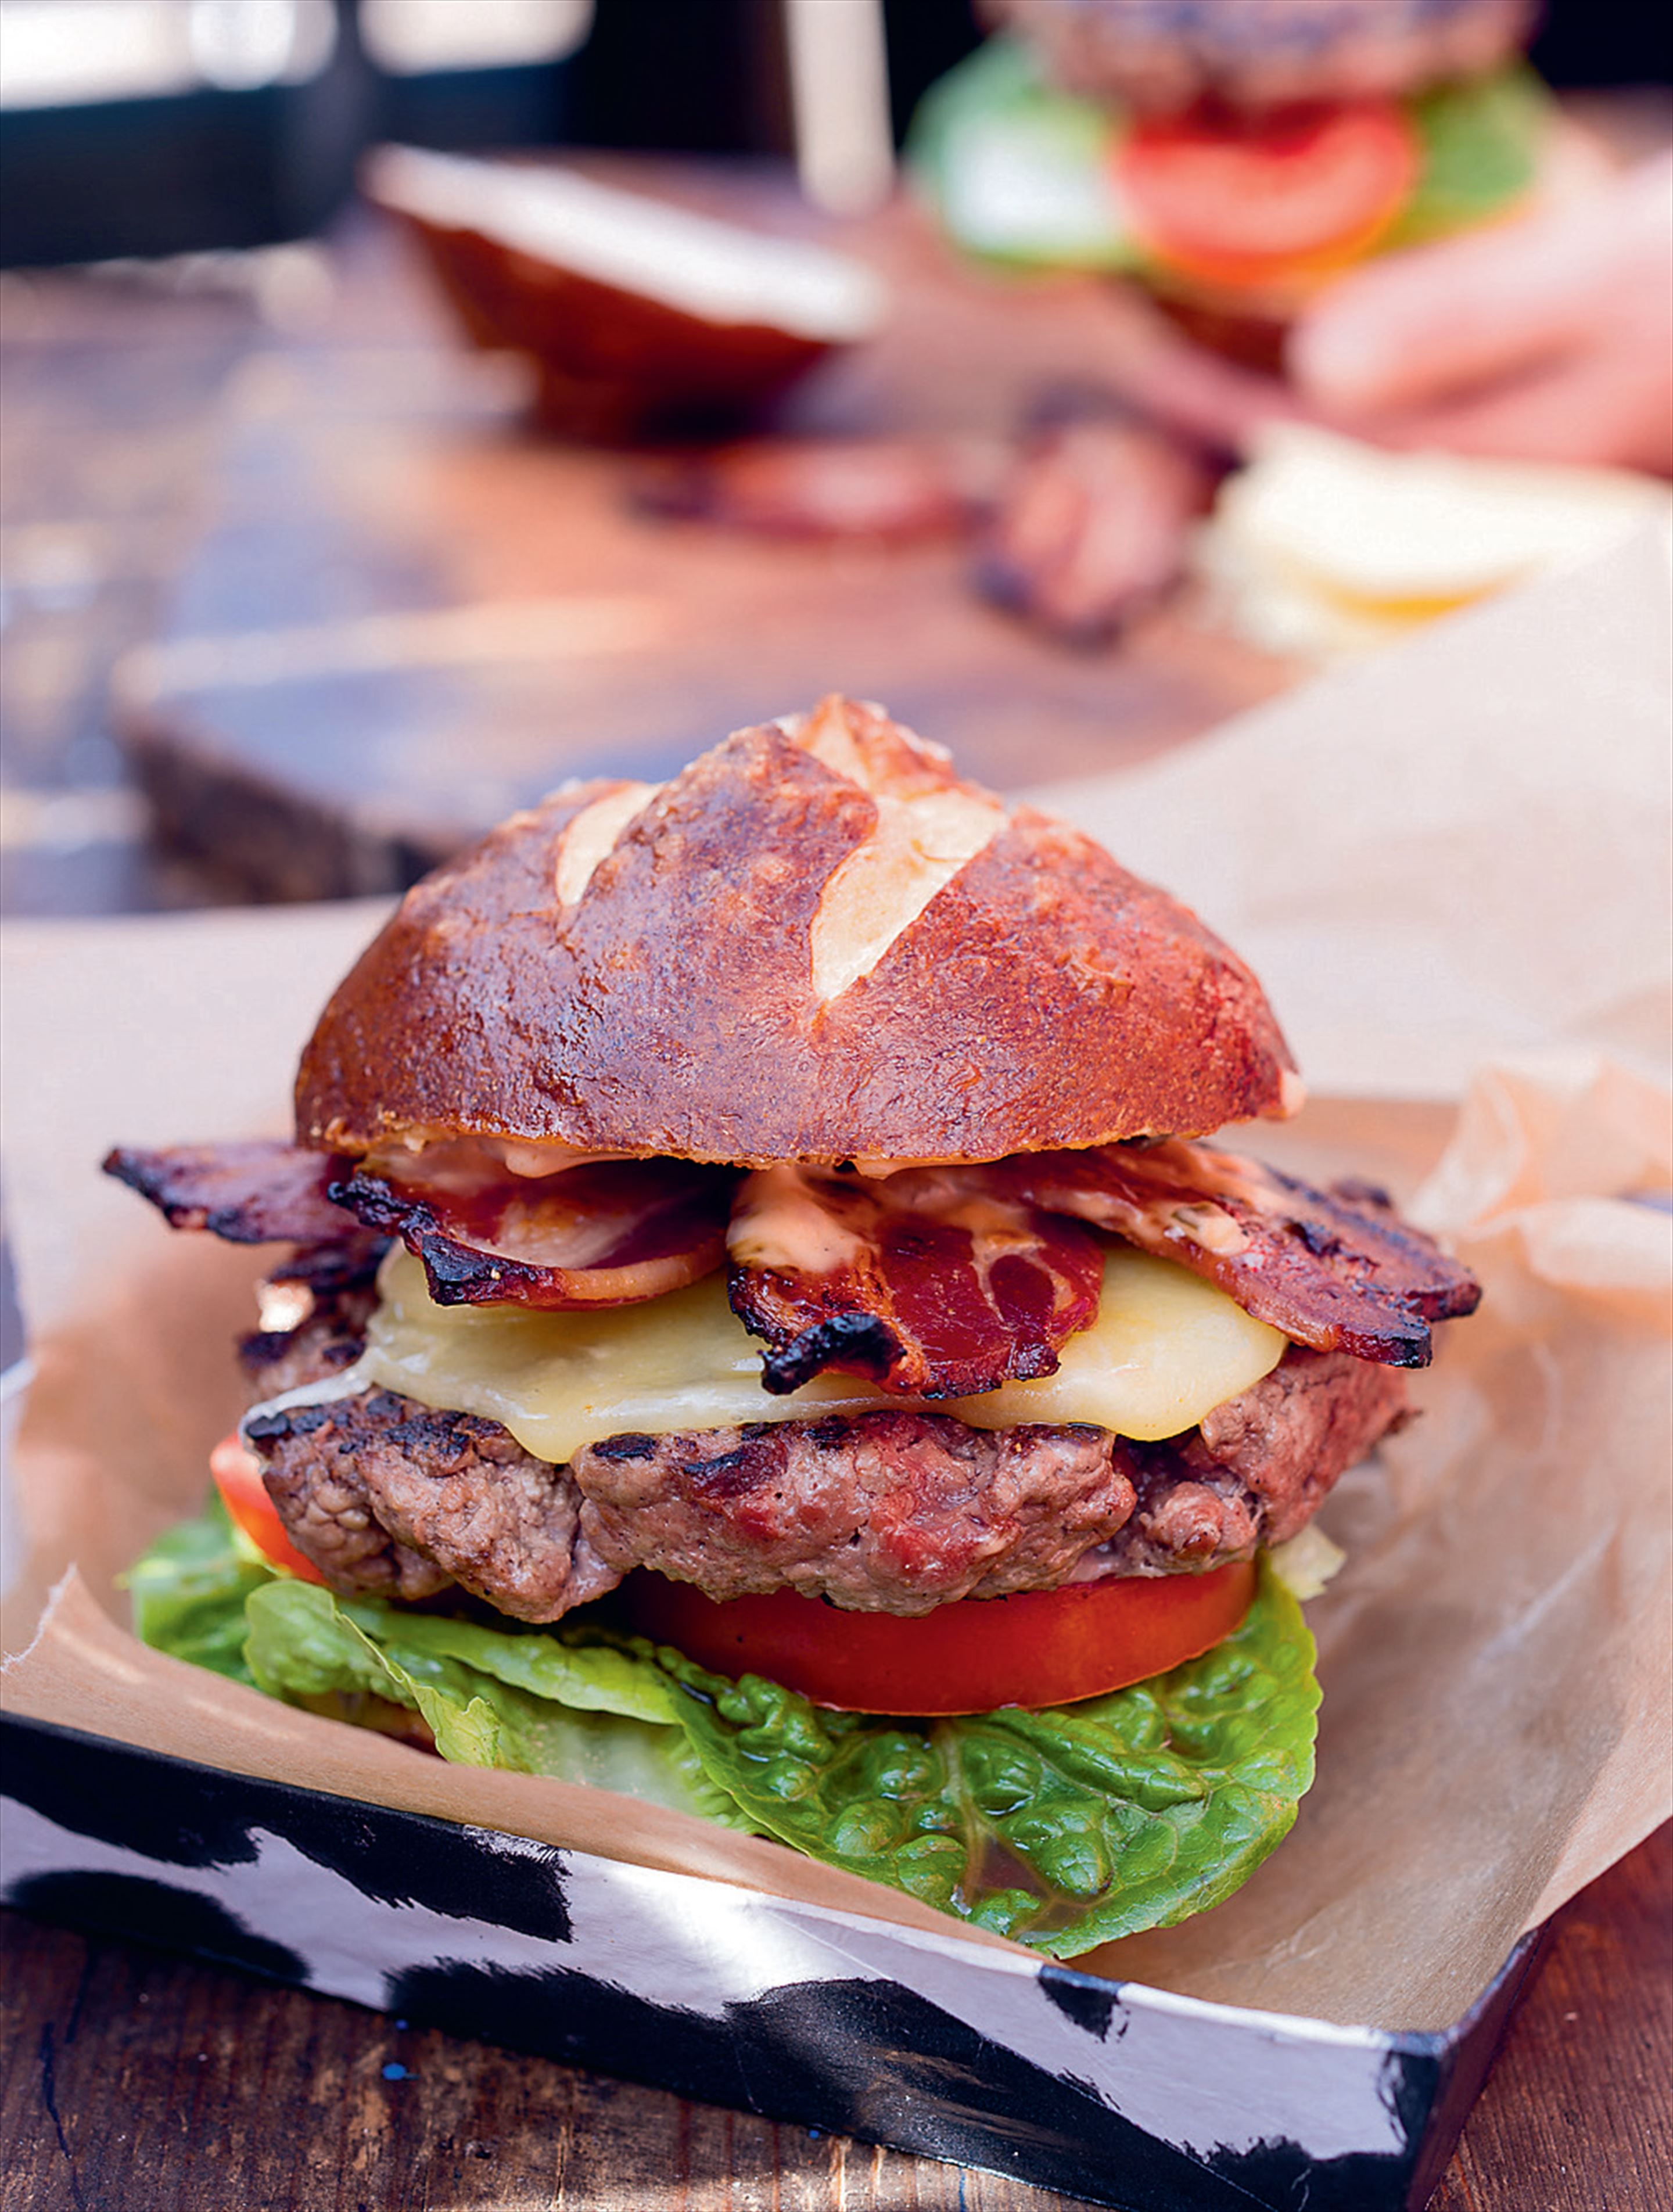 Hang Fire's AA bacon cheeseburger